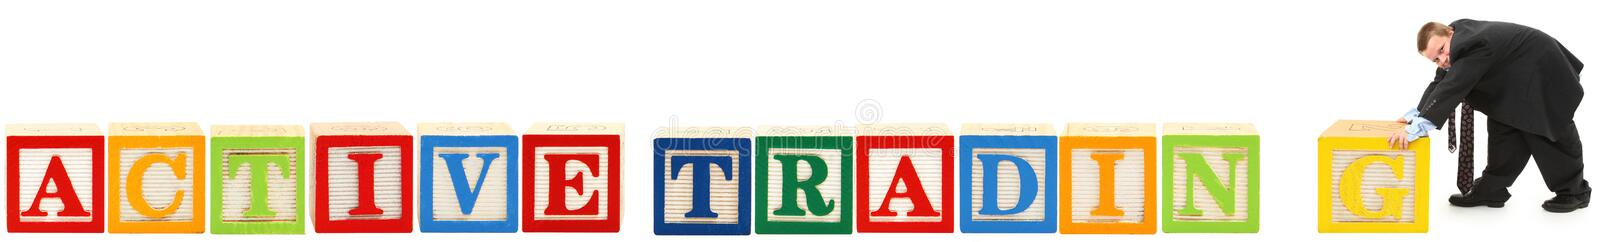 Download Alphabet Blocks Active Trading With Boy In Suit Stock Image - Image: 14895343